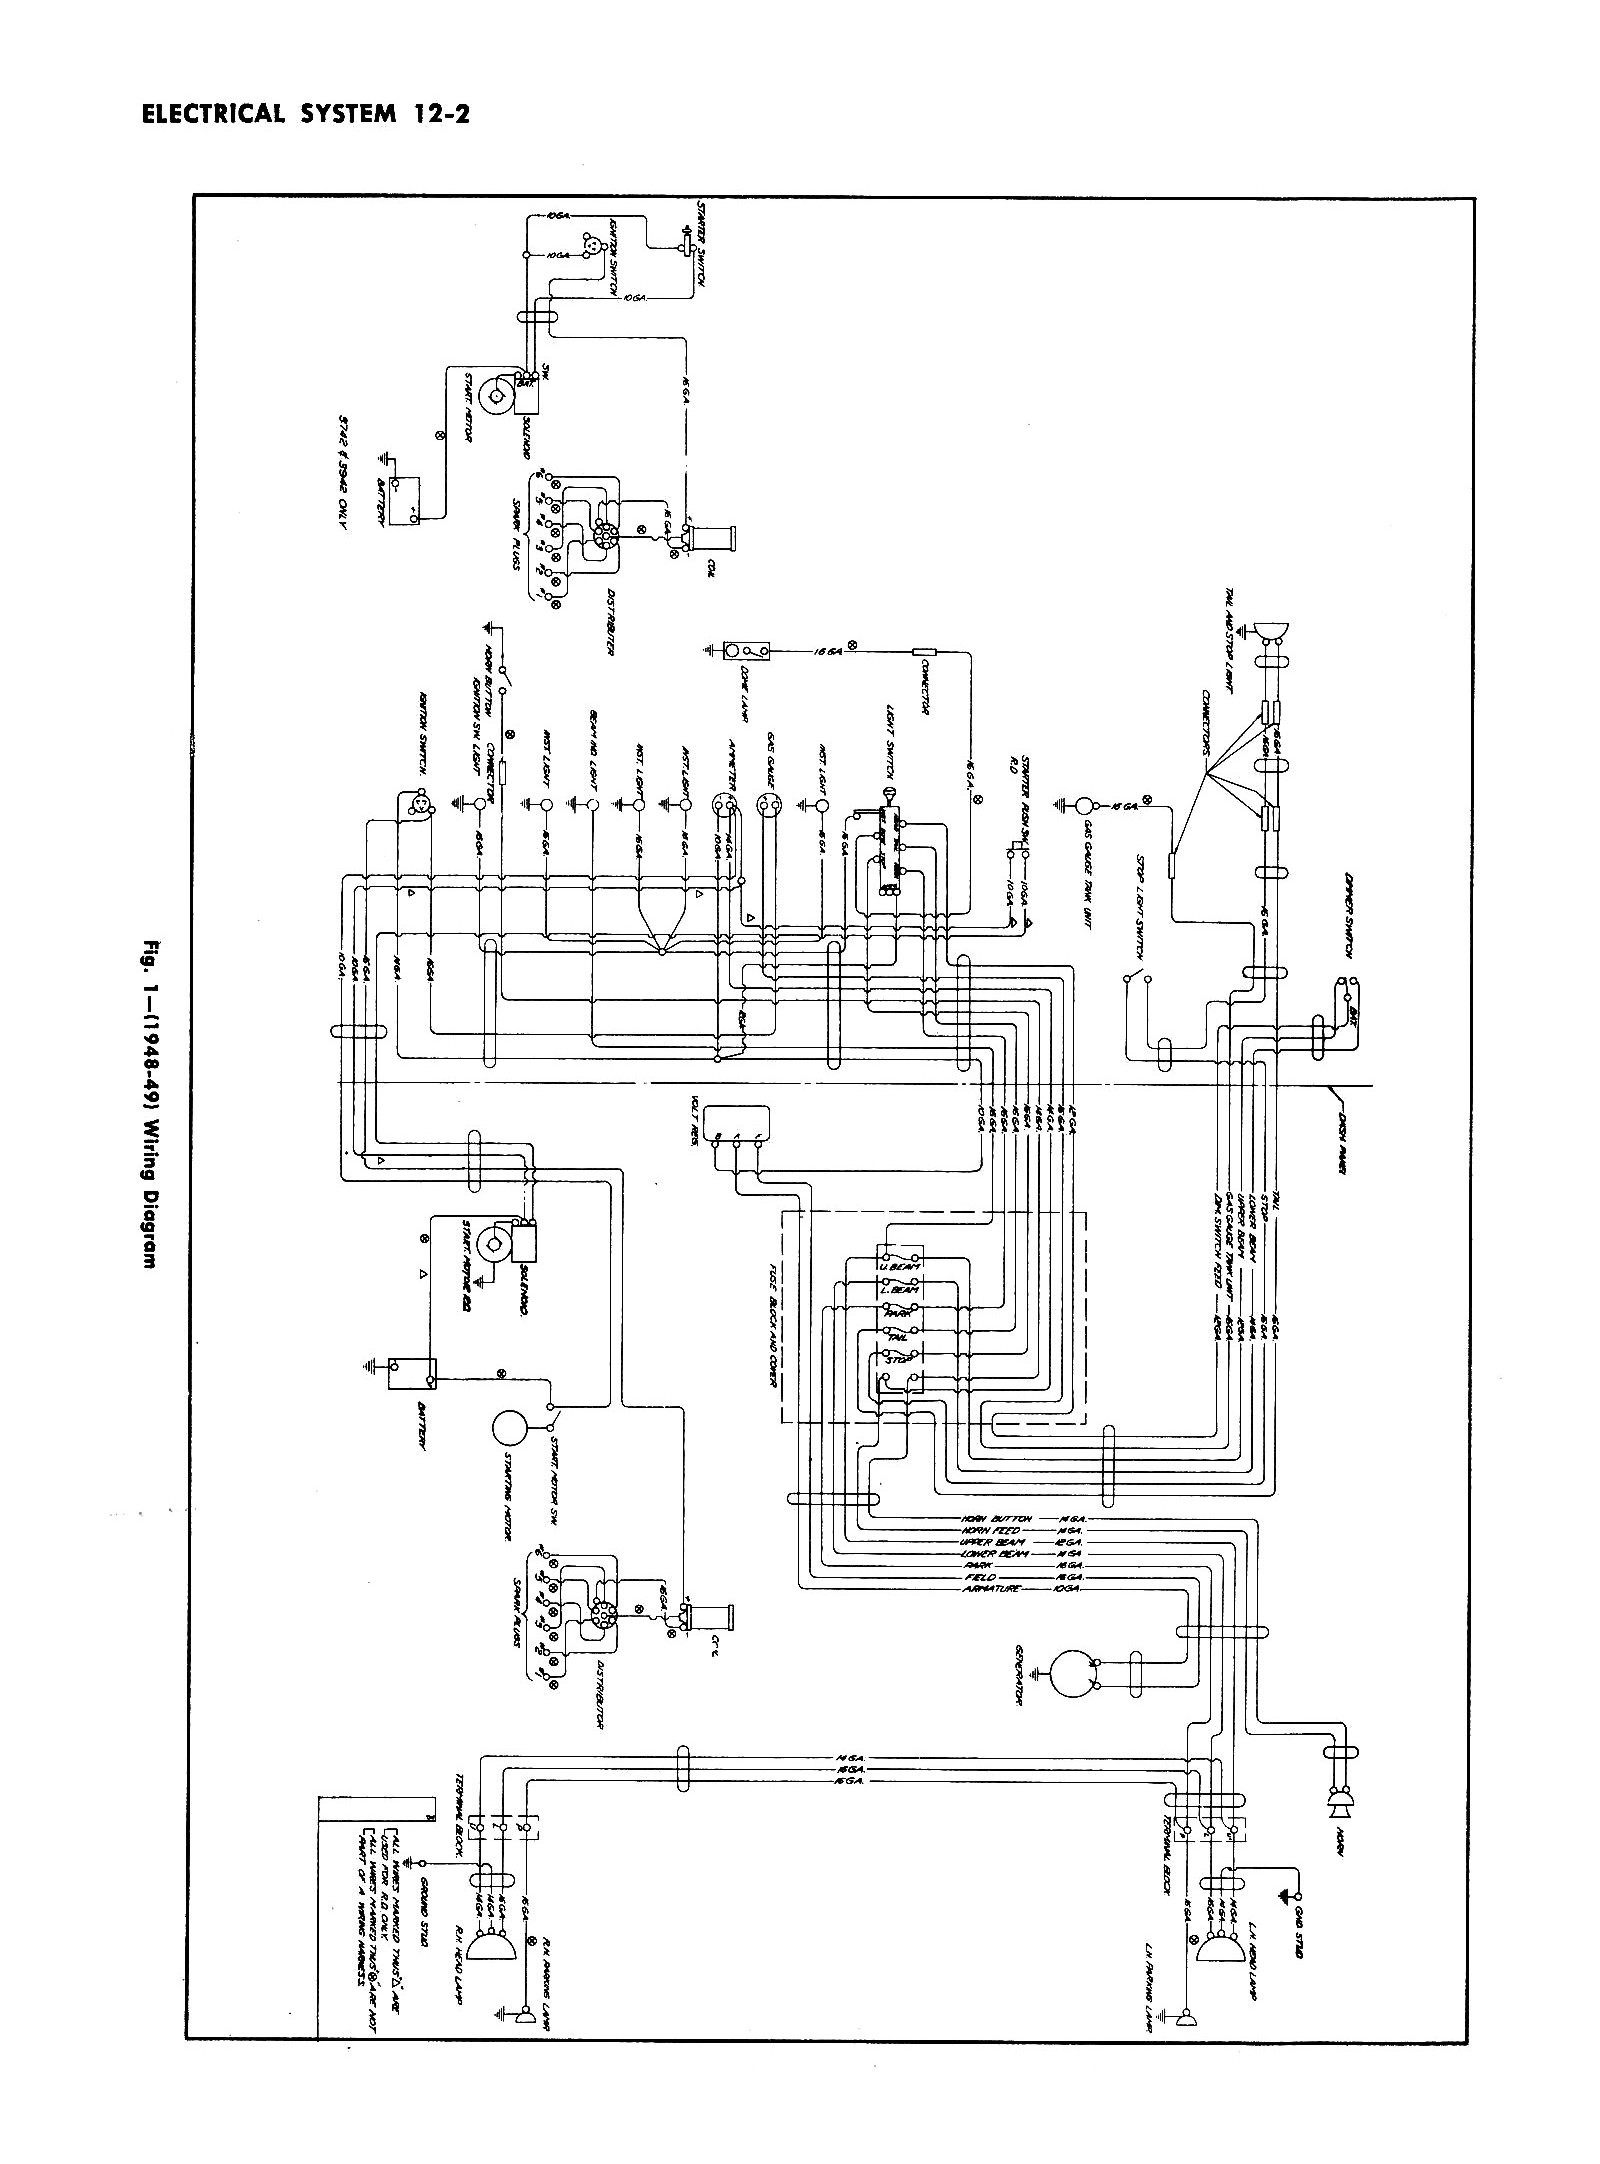 48car chevy wiring diagrams chevy truck diagrams free at edmiracle.co